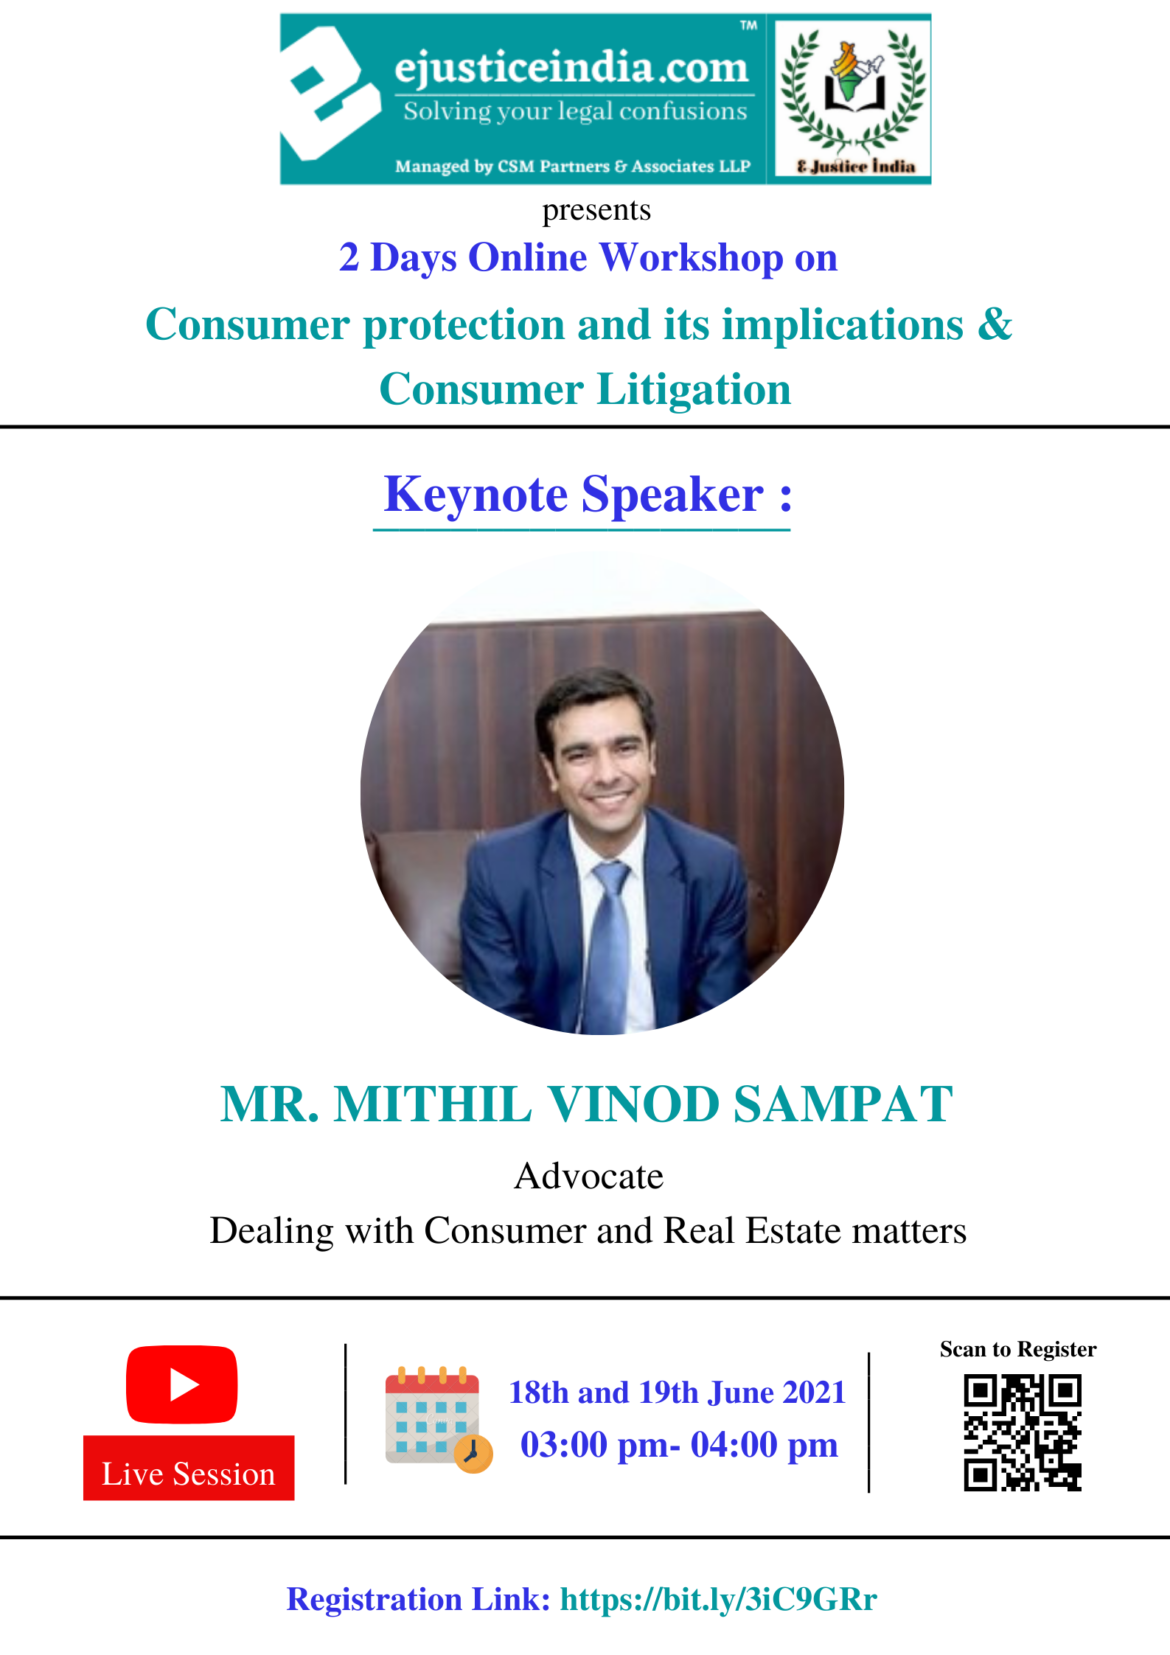 2 Days Free Online Workshop on Consumer protection and its implications & Consumer Litigation